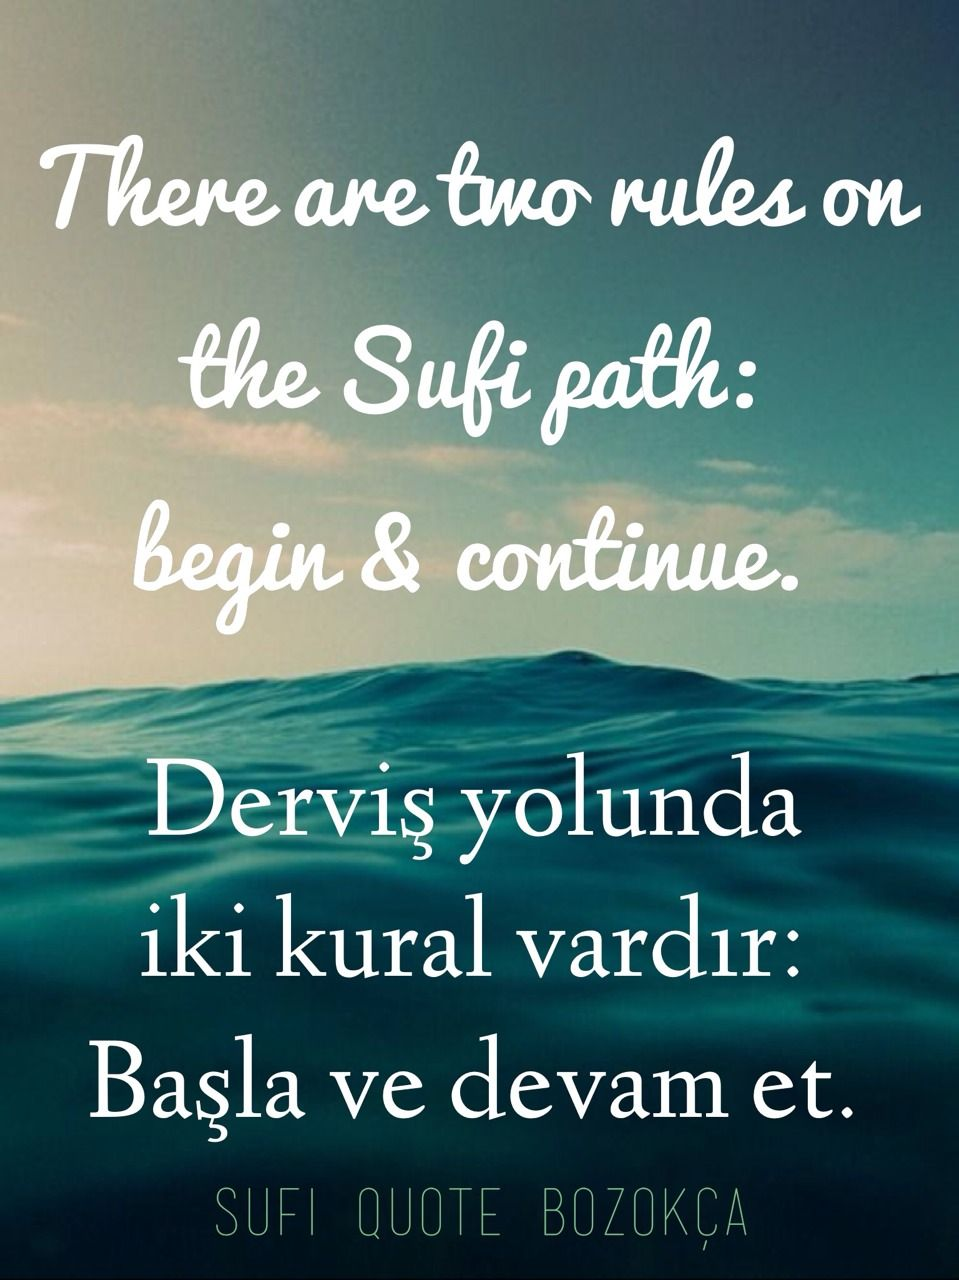 Pin By Tokka Osama On Quotes Sufi Quotes Mystic Words Turkish Quotes